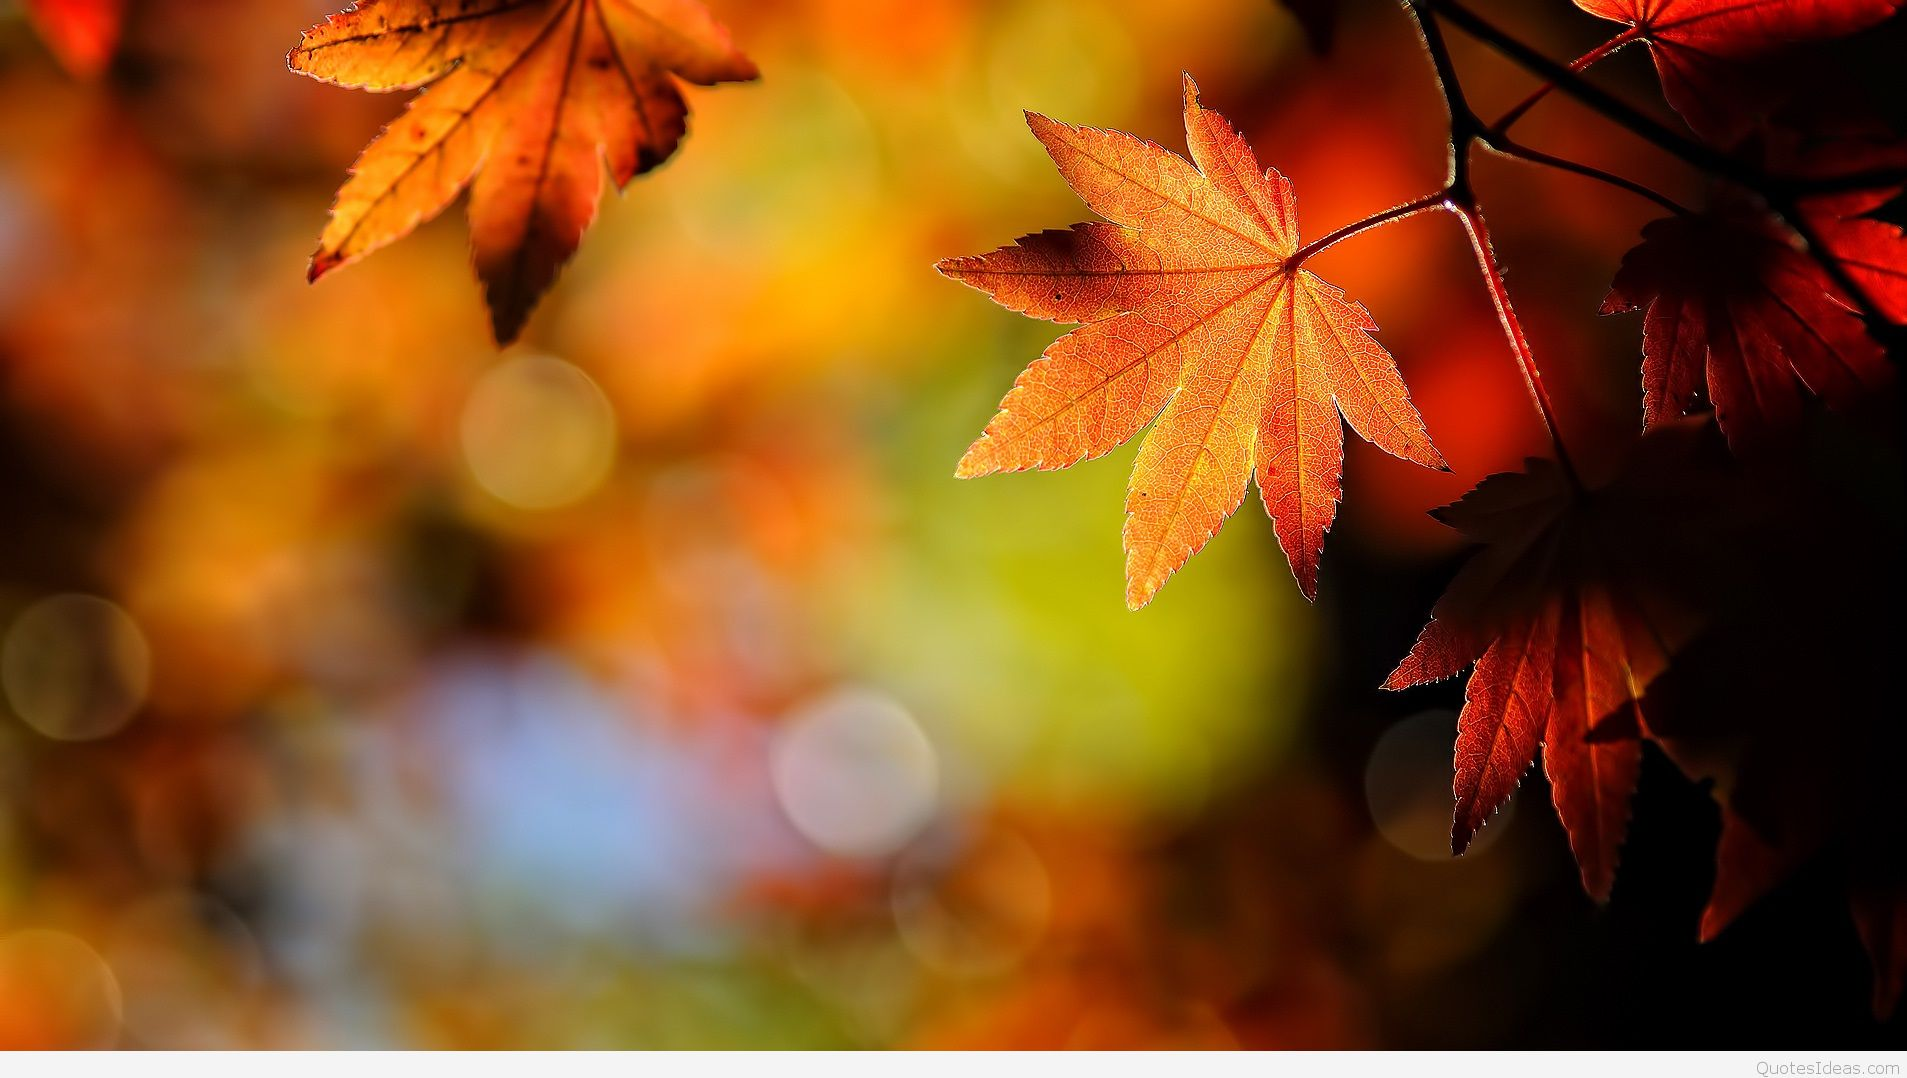 Best Autumn wallpapers quotes, sayings, images hd